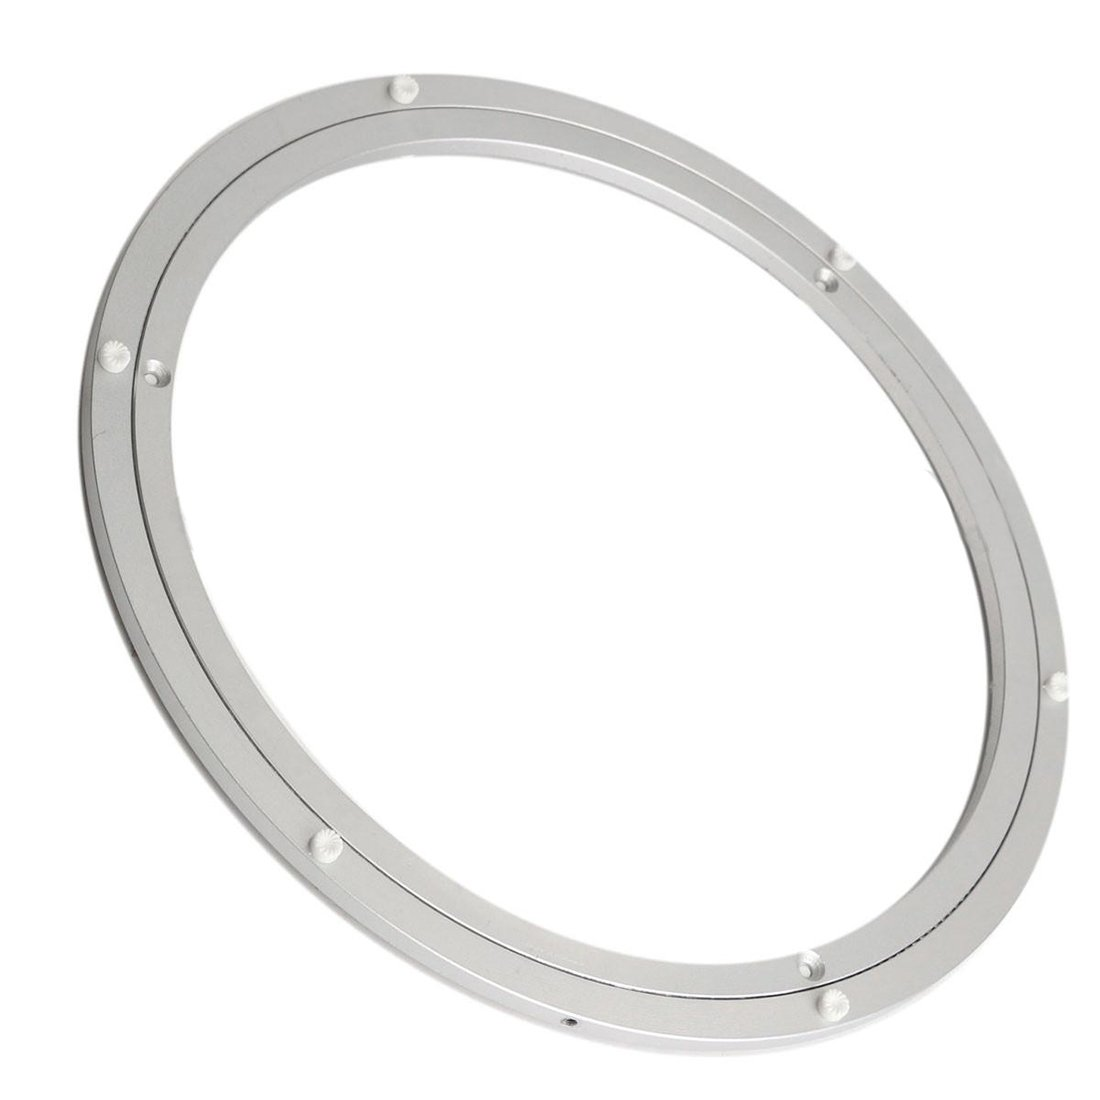 SODIAL(R) Aluminium Rotating Turntable Bearing Swivel Plate 16 Inch Silver AEQW-WER-AW124786